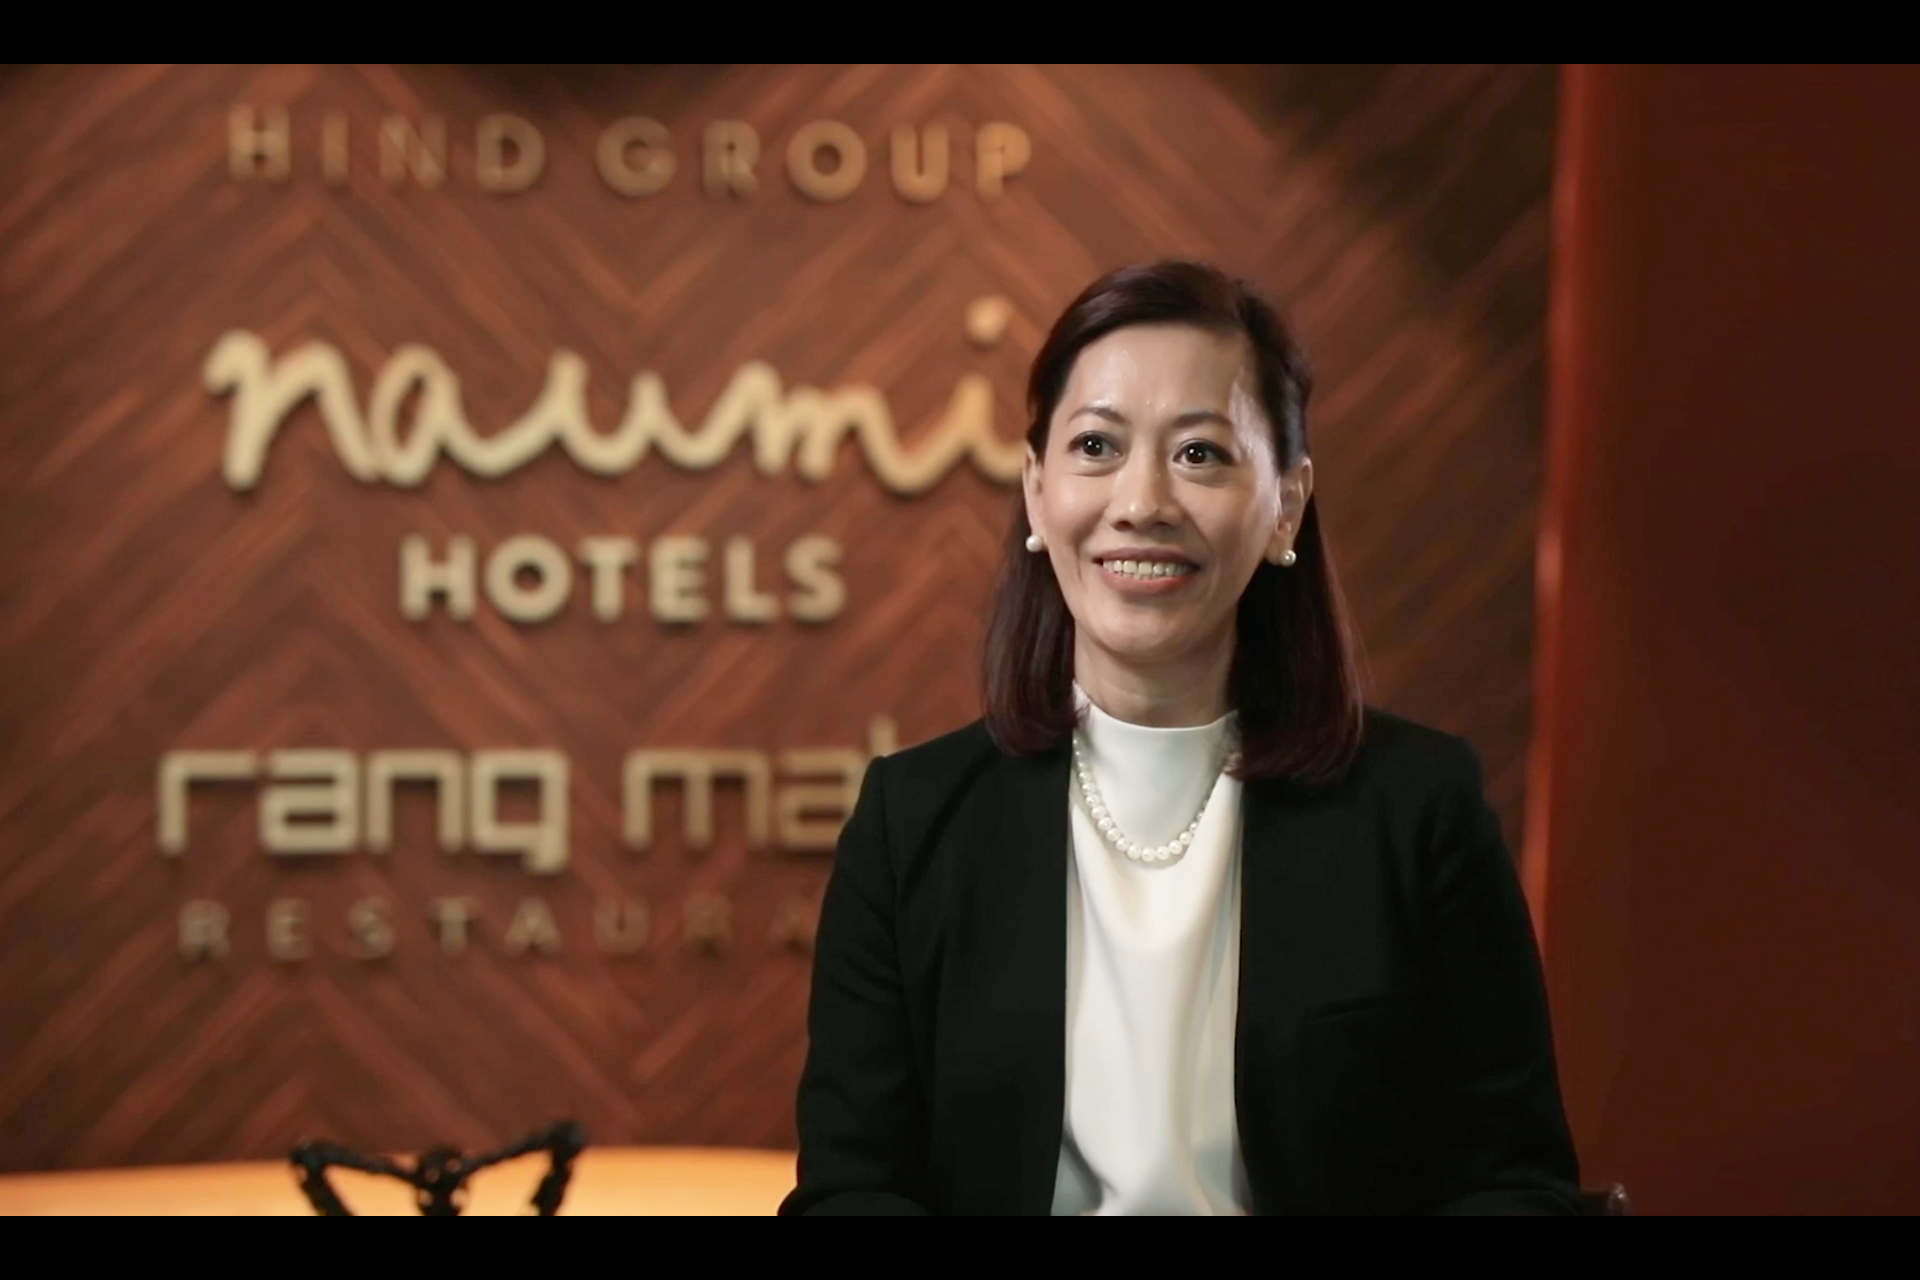 Naumi Hotels Success Video Preview